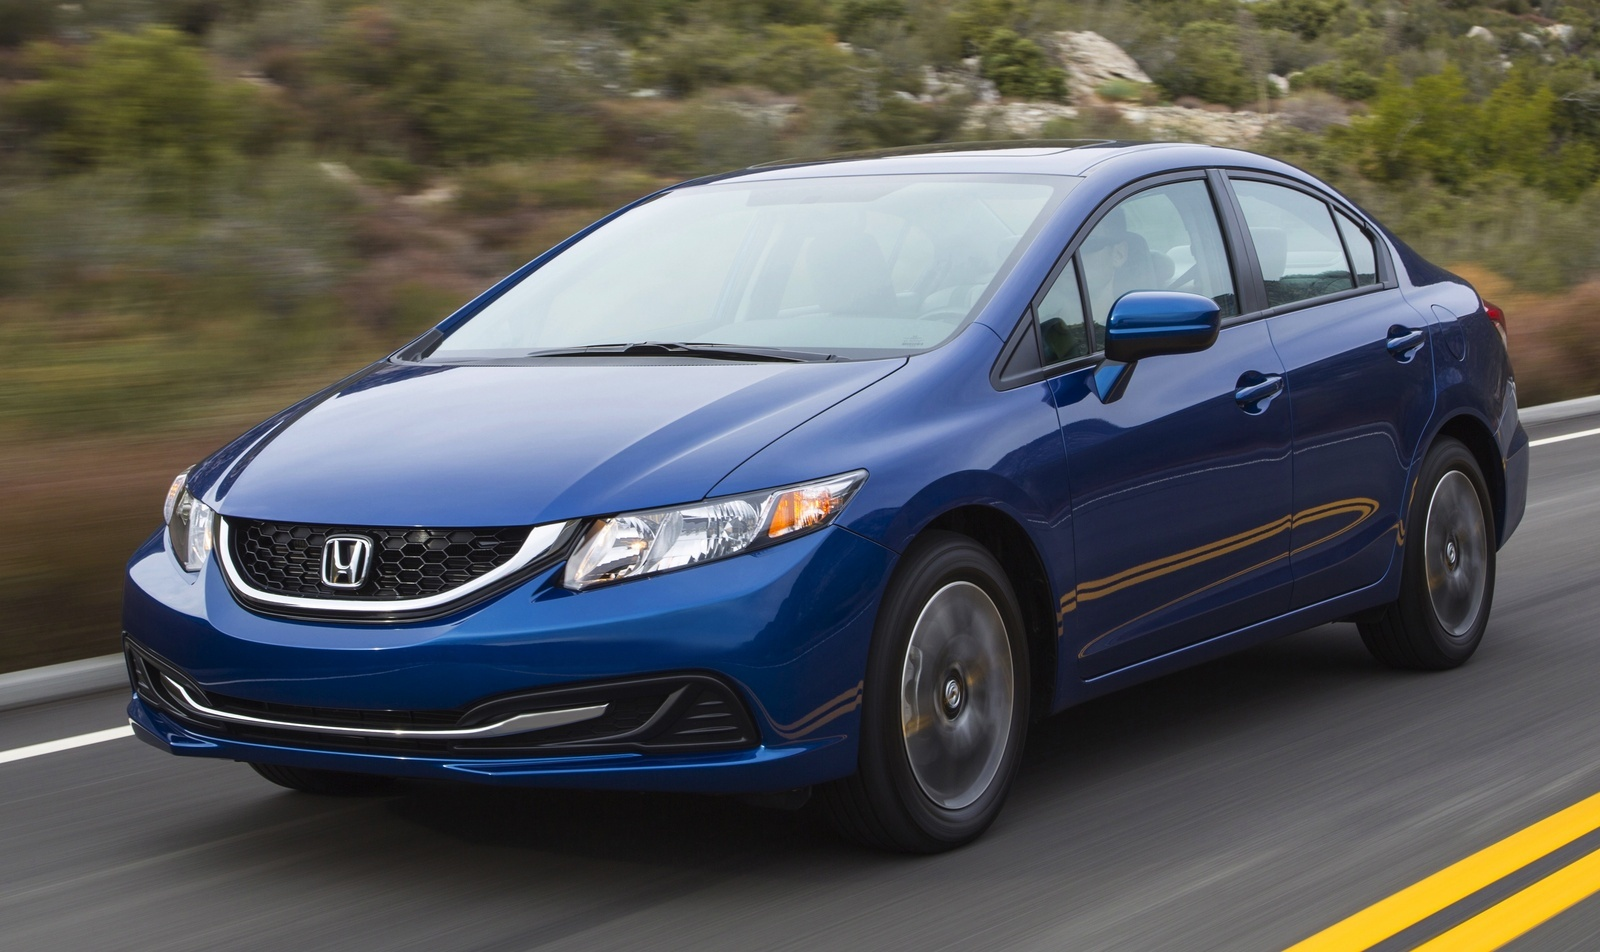 2012 honda civic ex invoice price canada wroc awski for Honda civic dealership